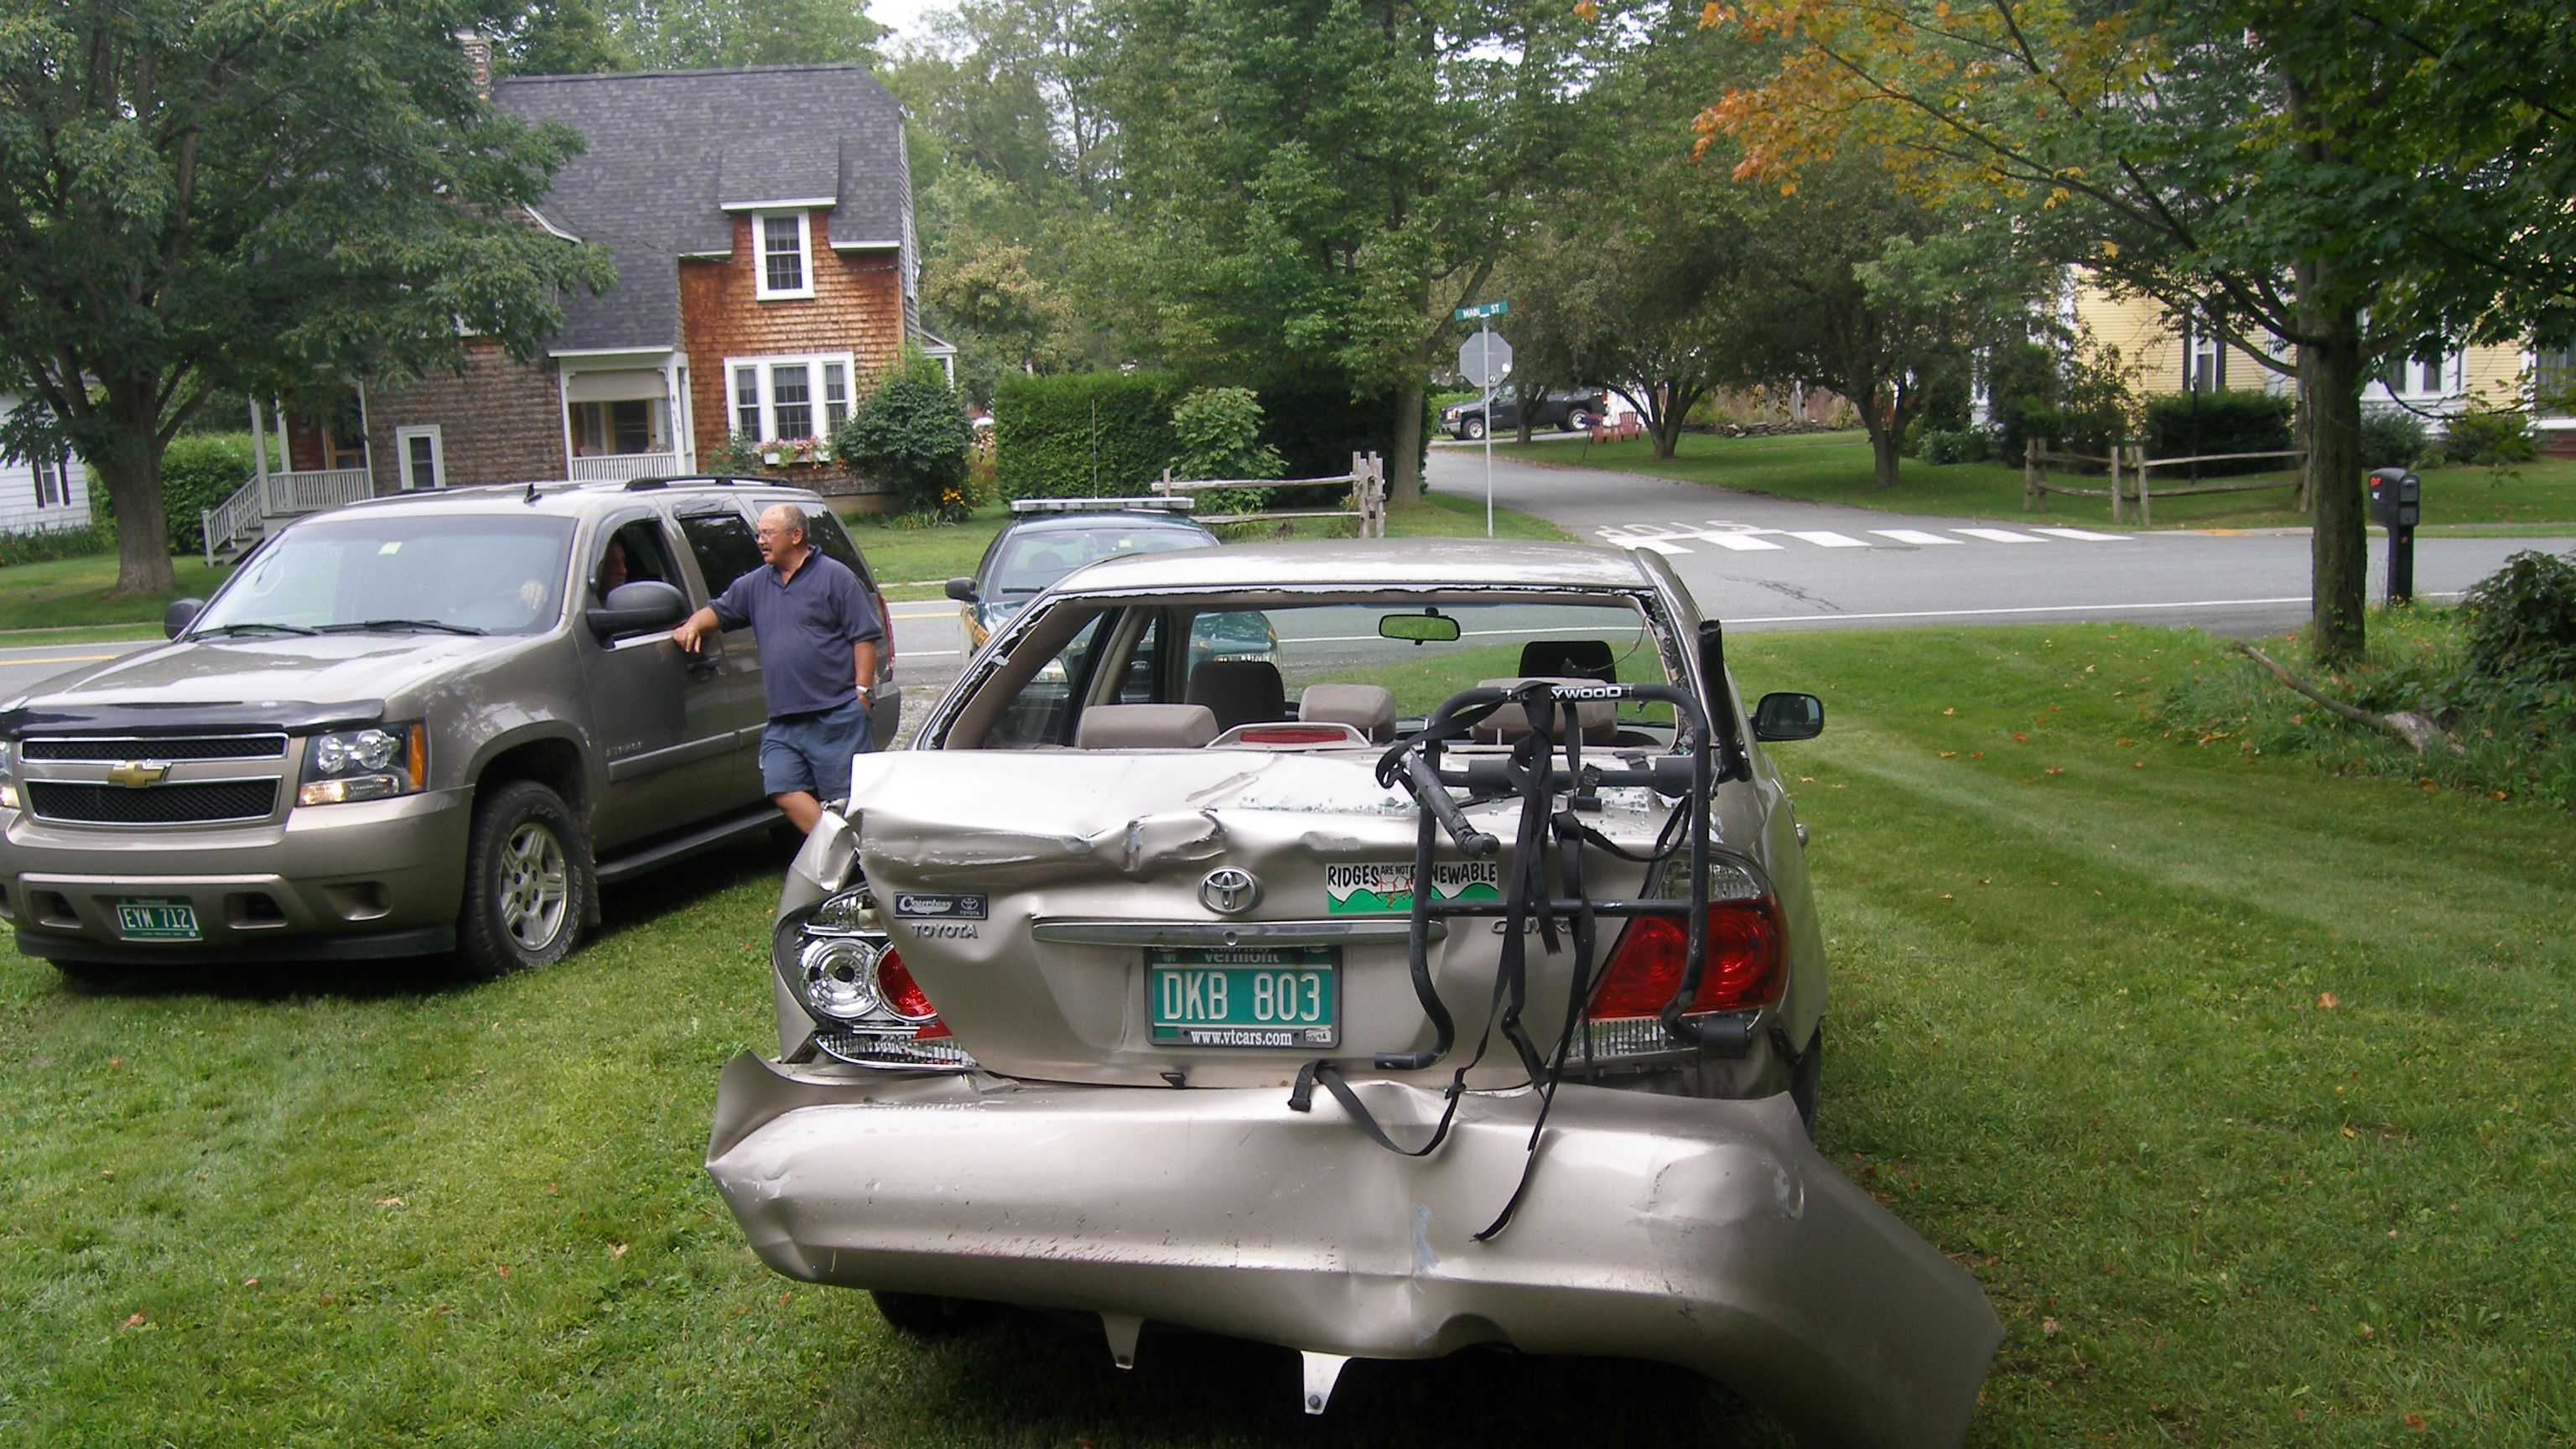 08-27 Driver ticketed in car-into-house crash - car img